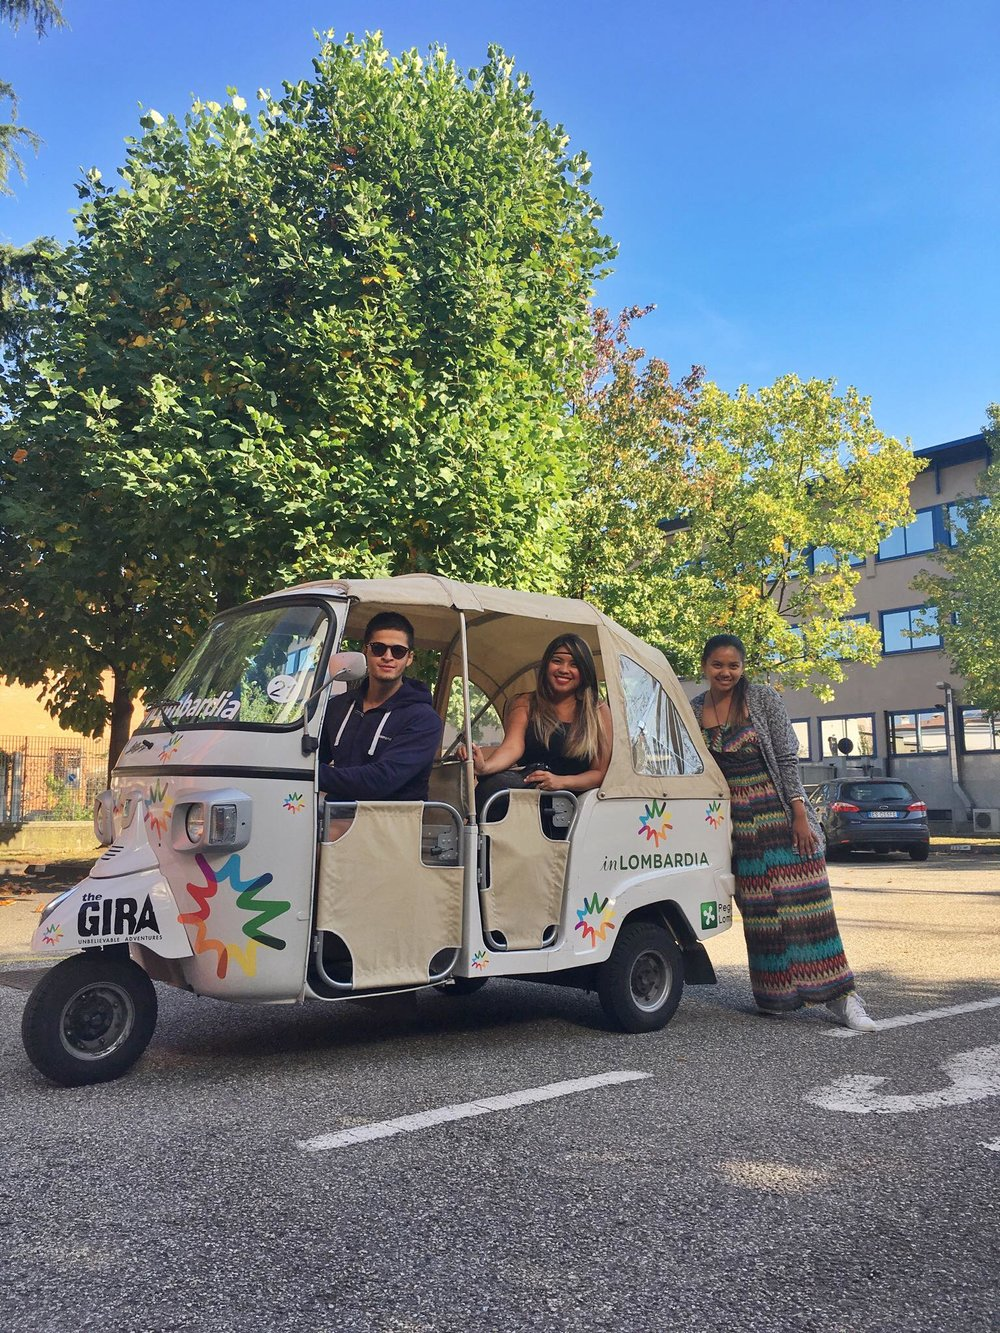 Kach Solo Travels Day 48: Reunited with Krista and Kees for a 4-day Tuktuk Roadtrip in Lombardy Region, Italy